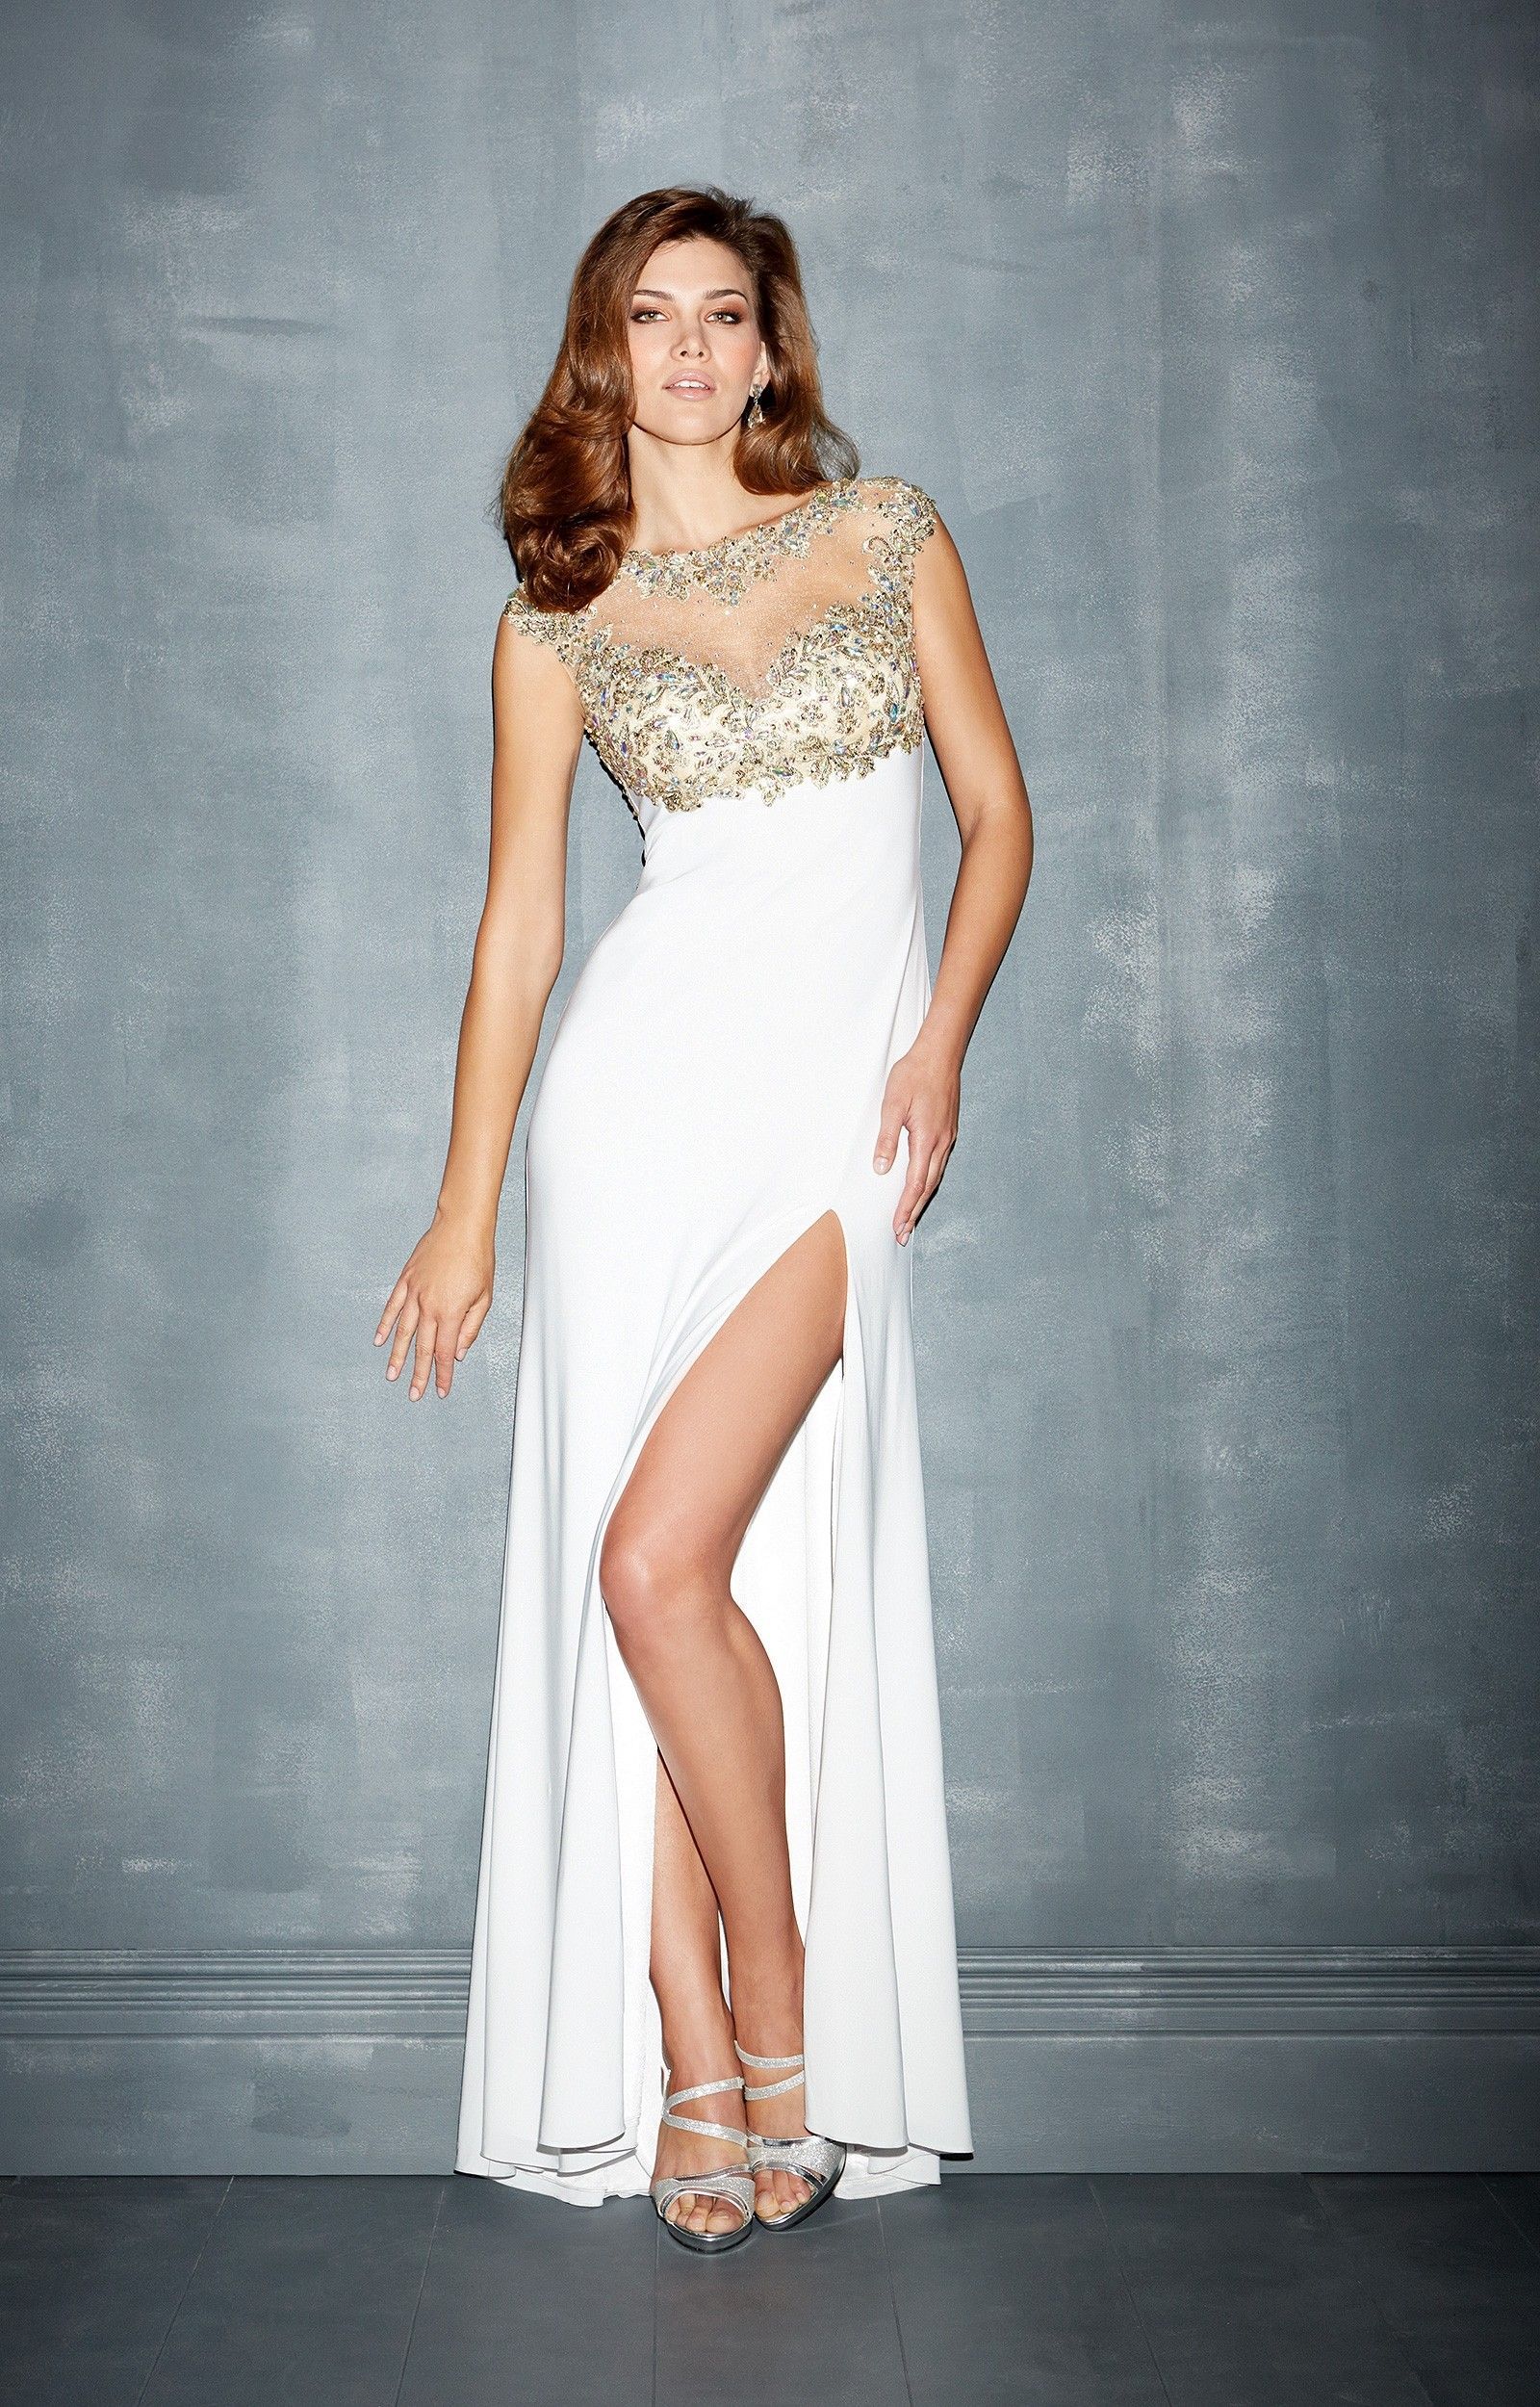 Madison james 7001 26999 madison james httpintroclassy brighten the night up in nightmoves by allure sheer top is adorned with glitzy beads and covers the bust this luxurious evening gown features a bateau ombrellifo Images